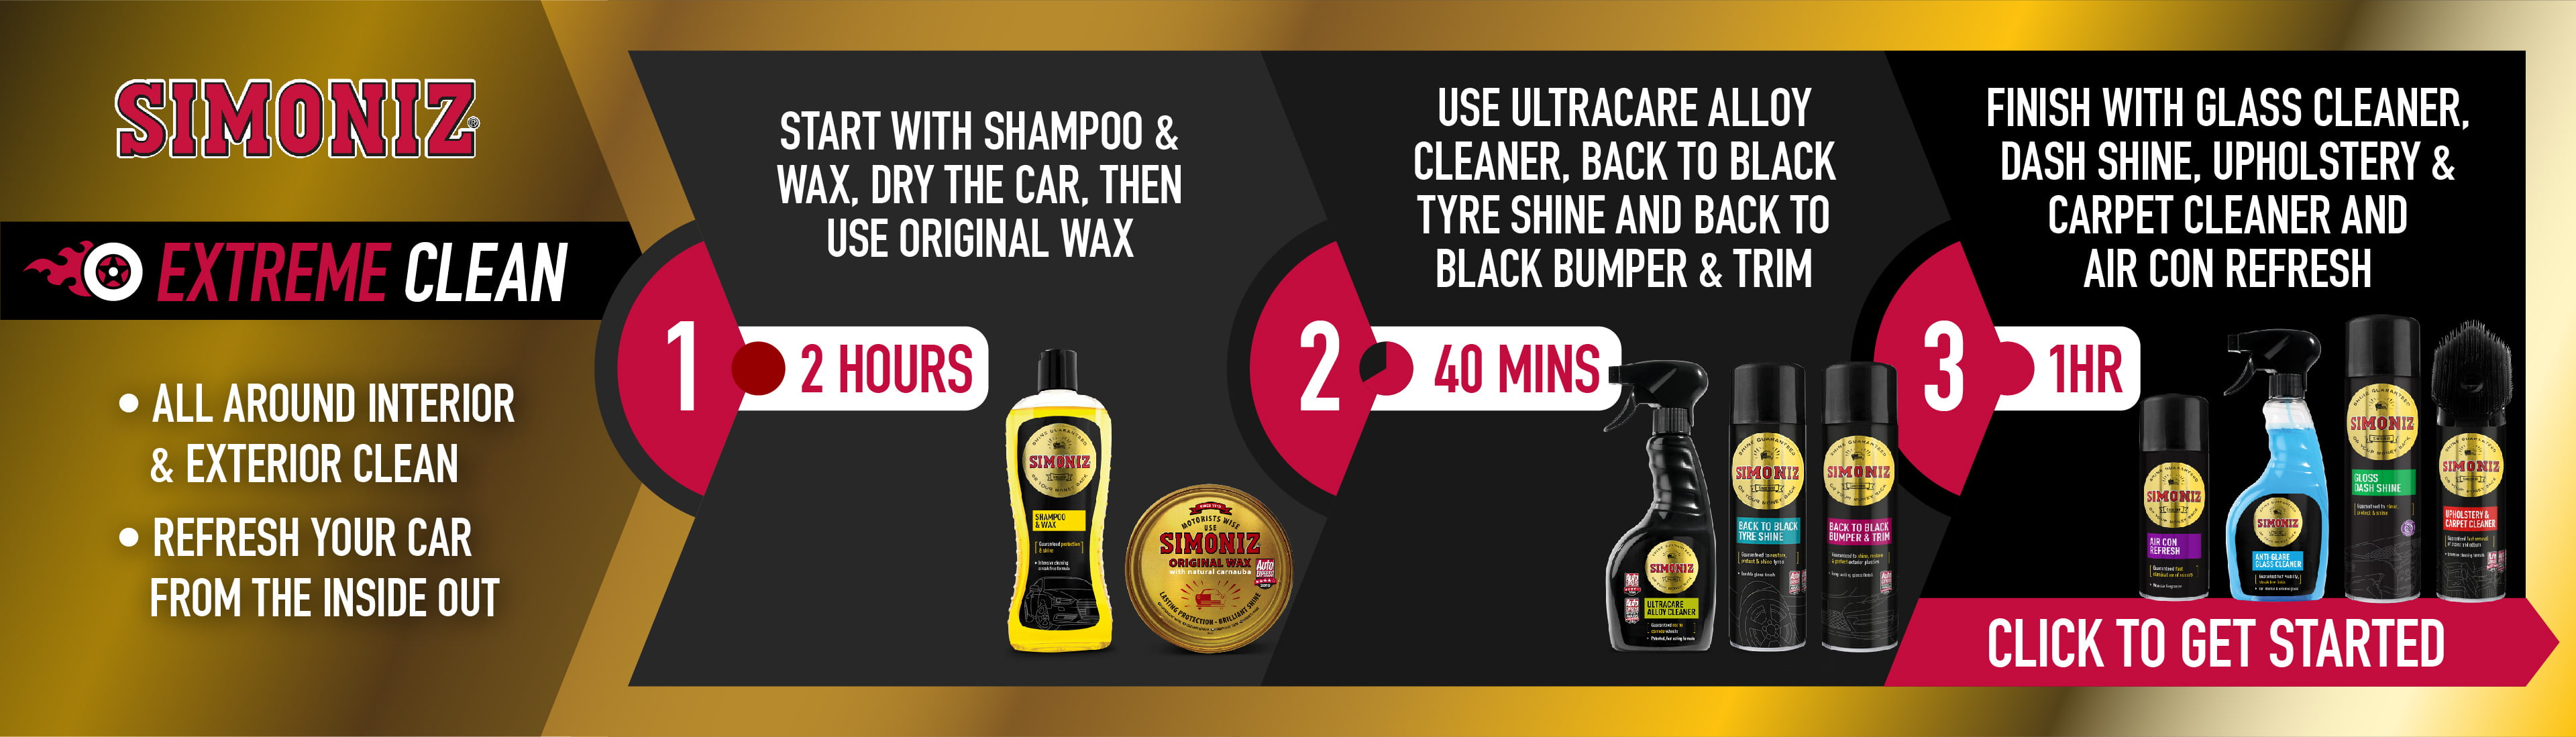 Simoniz Extreme Clean Guide